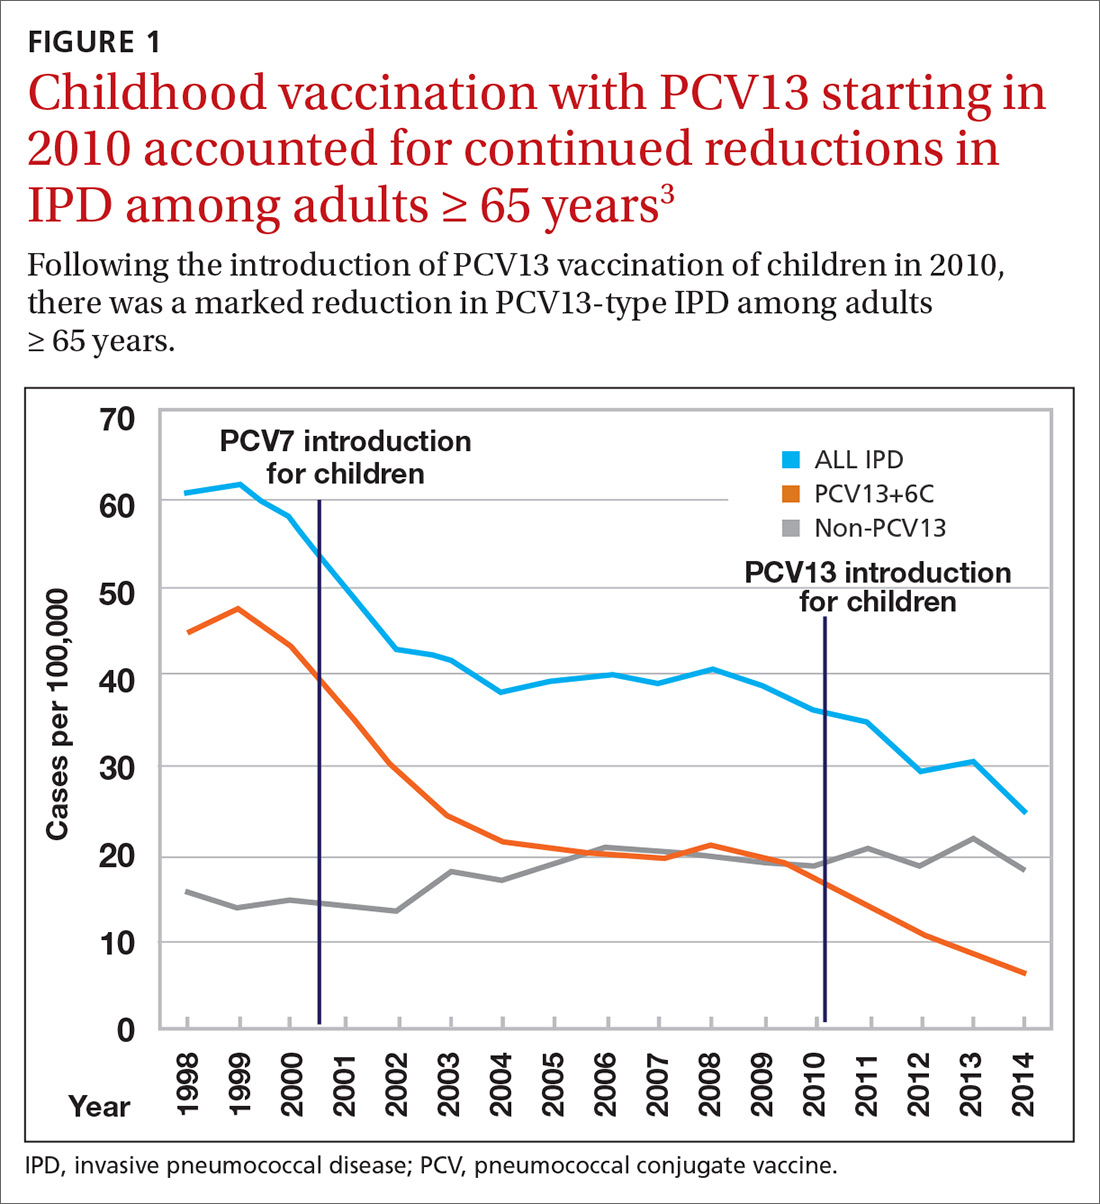 Childhood vaccination with PCV13 starting in 2010 accounted for continued reductions in IPD among adults